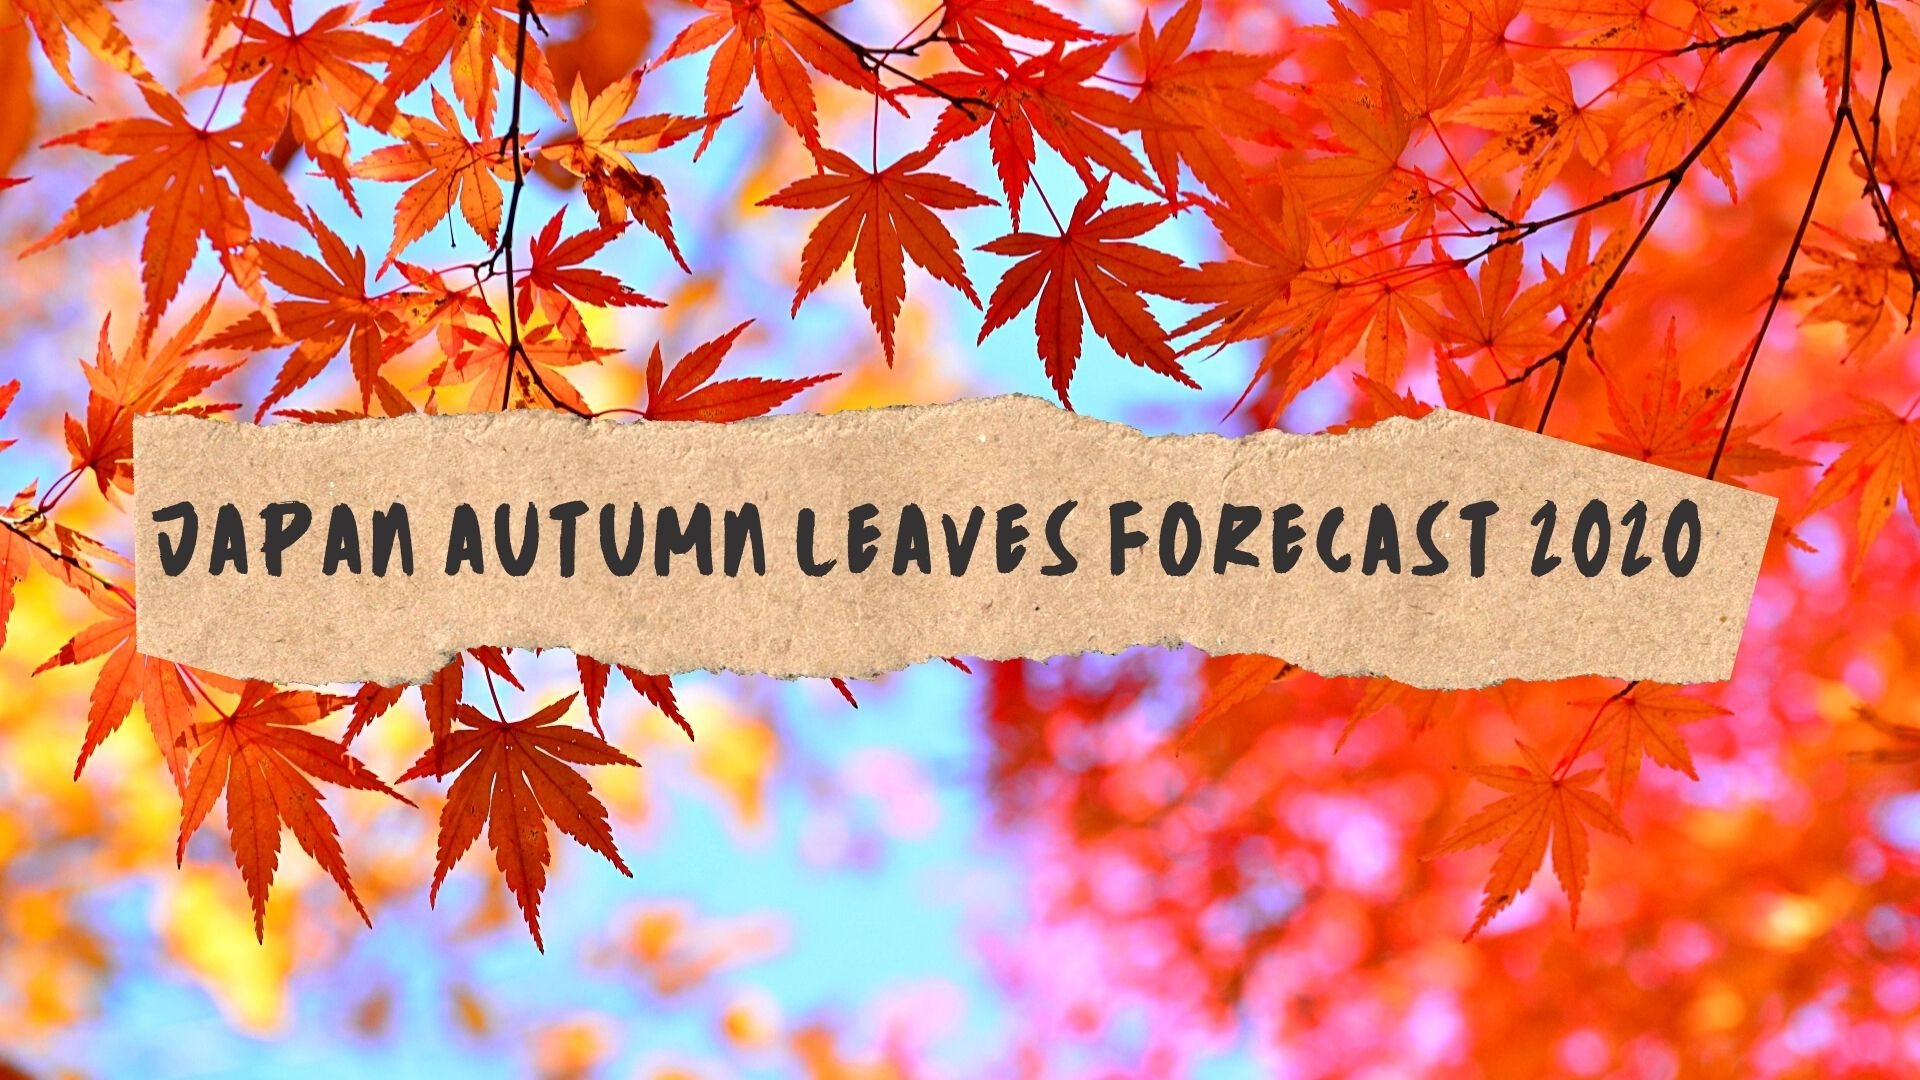 Japan Autumn Leaves Forecast 2020